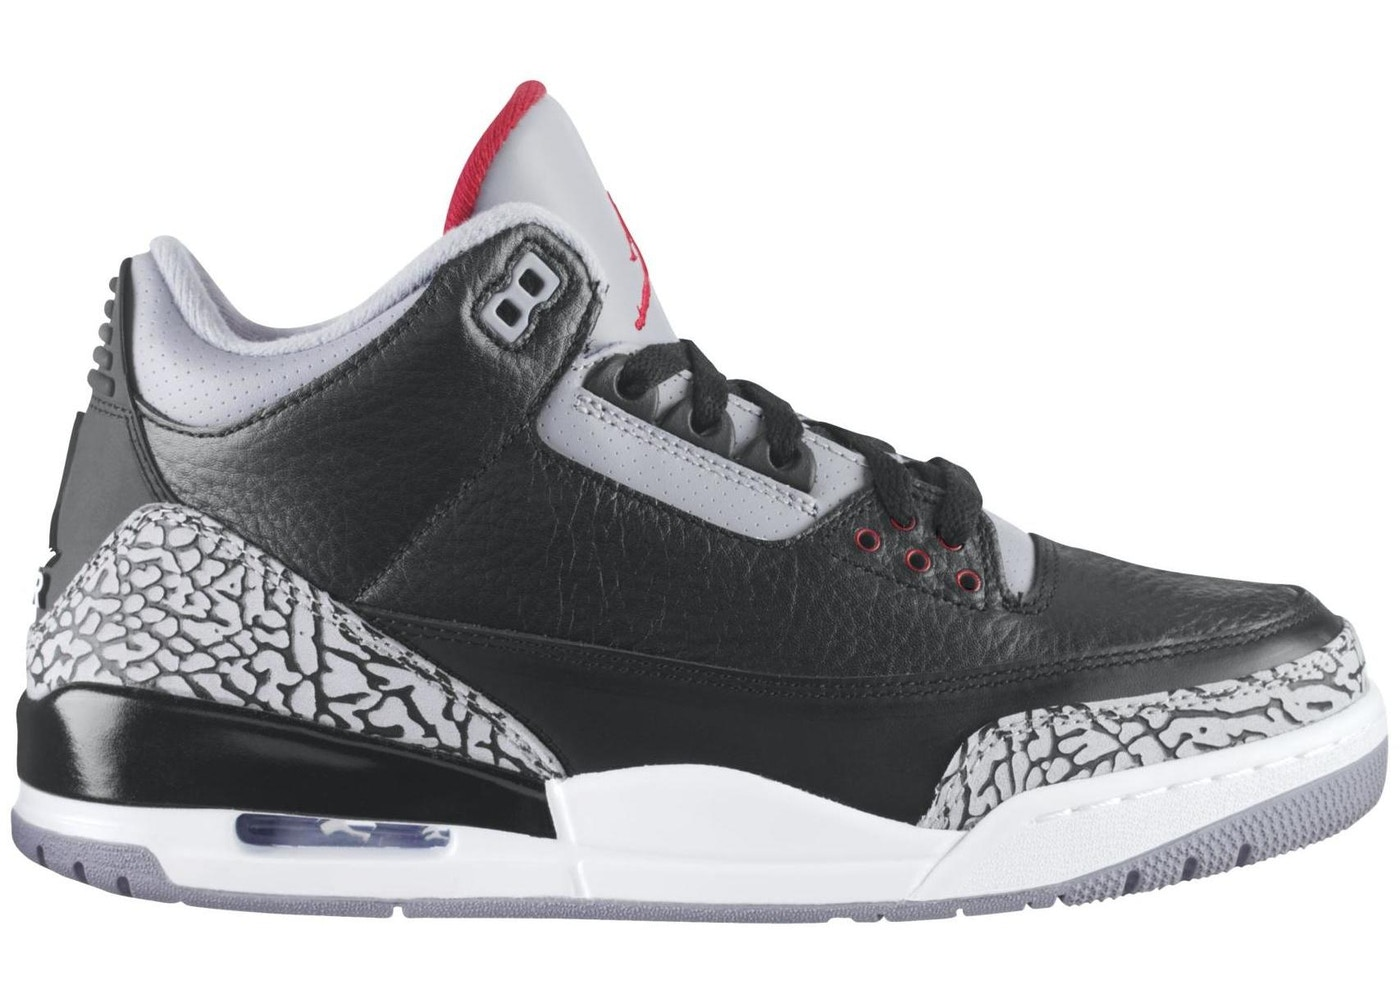 outlet store a34ce 4e3dc Buy Air Jordan 3 Shoes & Deadstock Sneakers